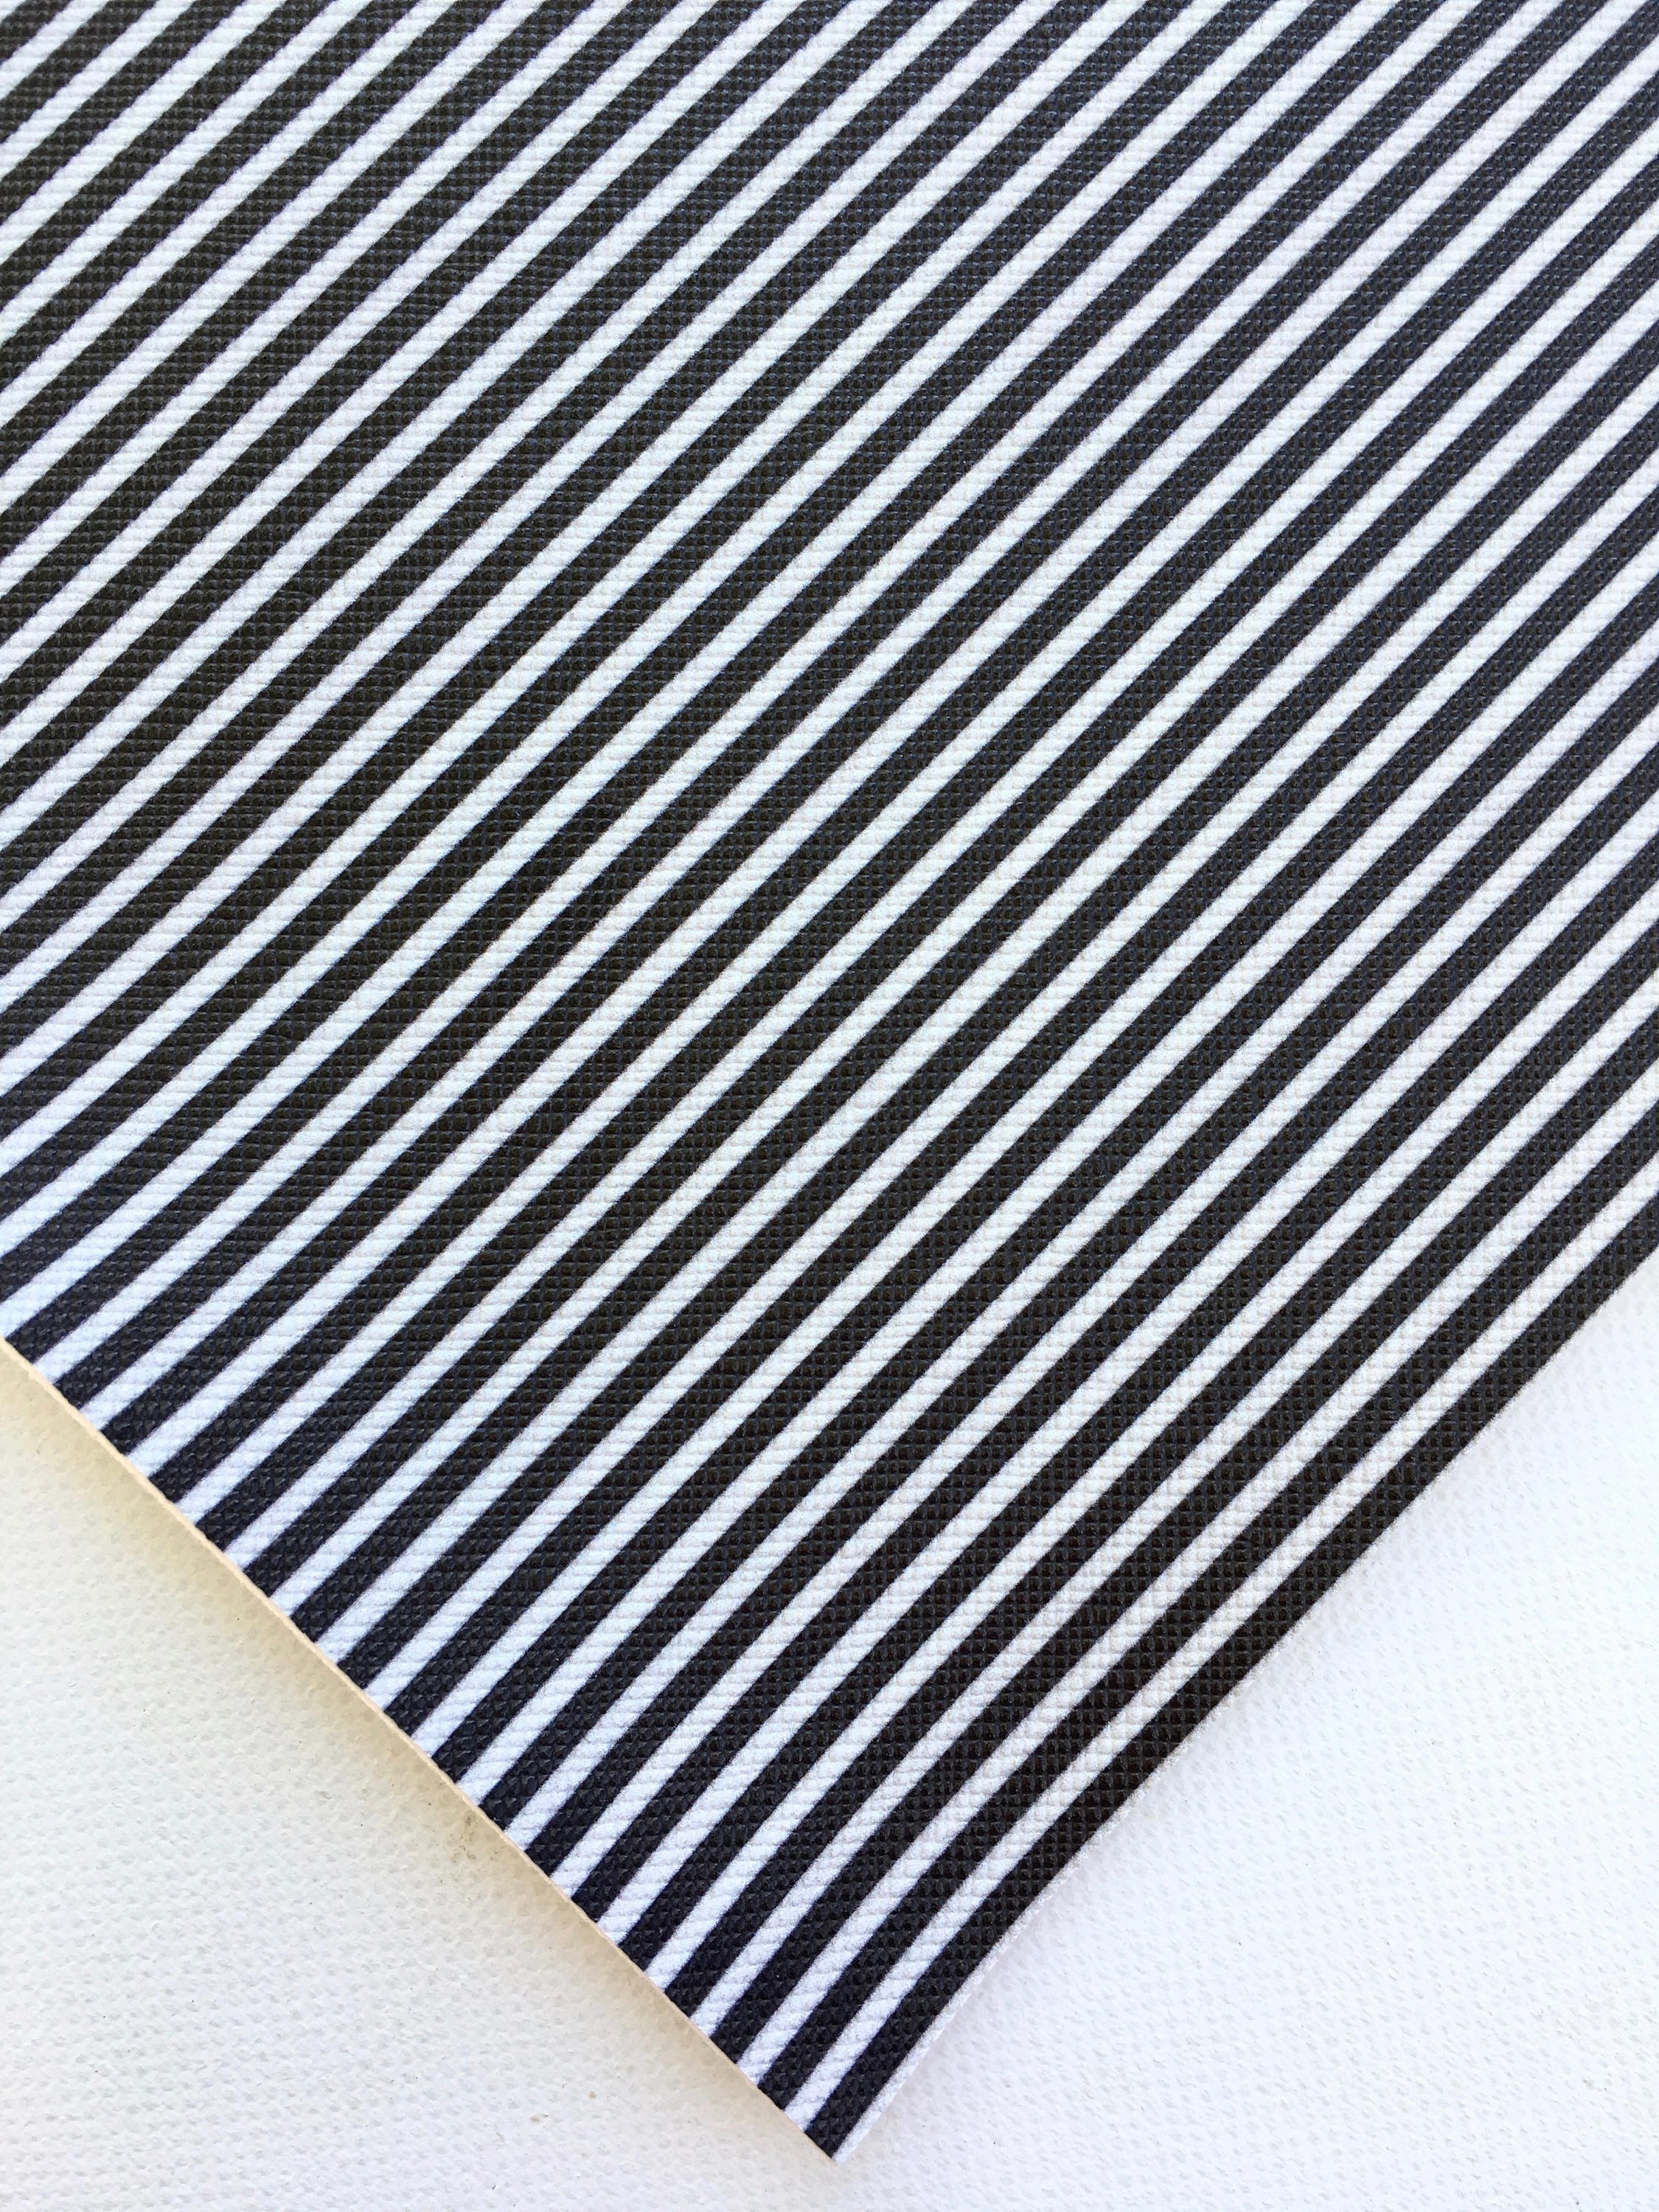 Black and White Striped Faux Leather Fabric